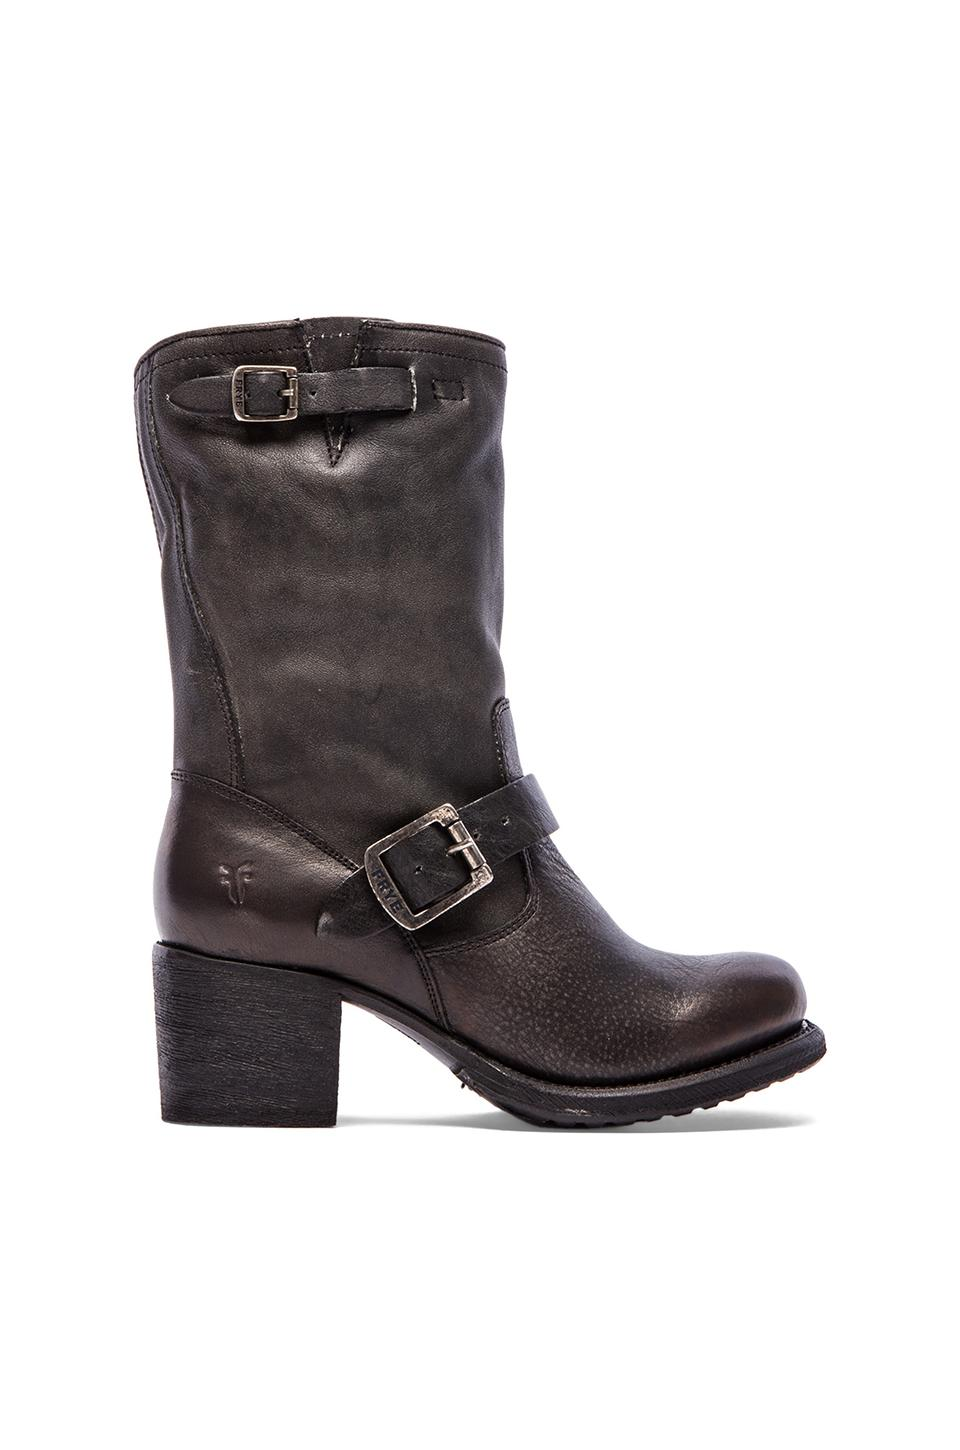 Frye Vera Short Boot in Black